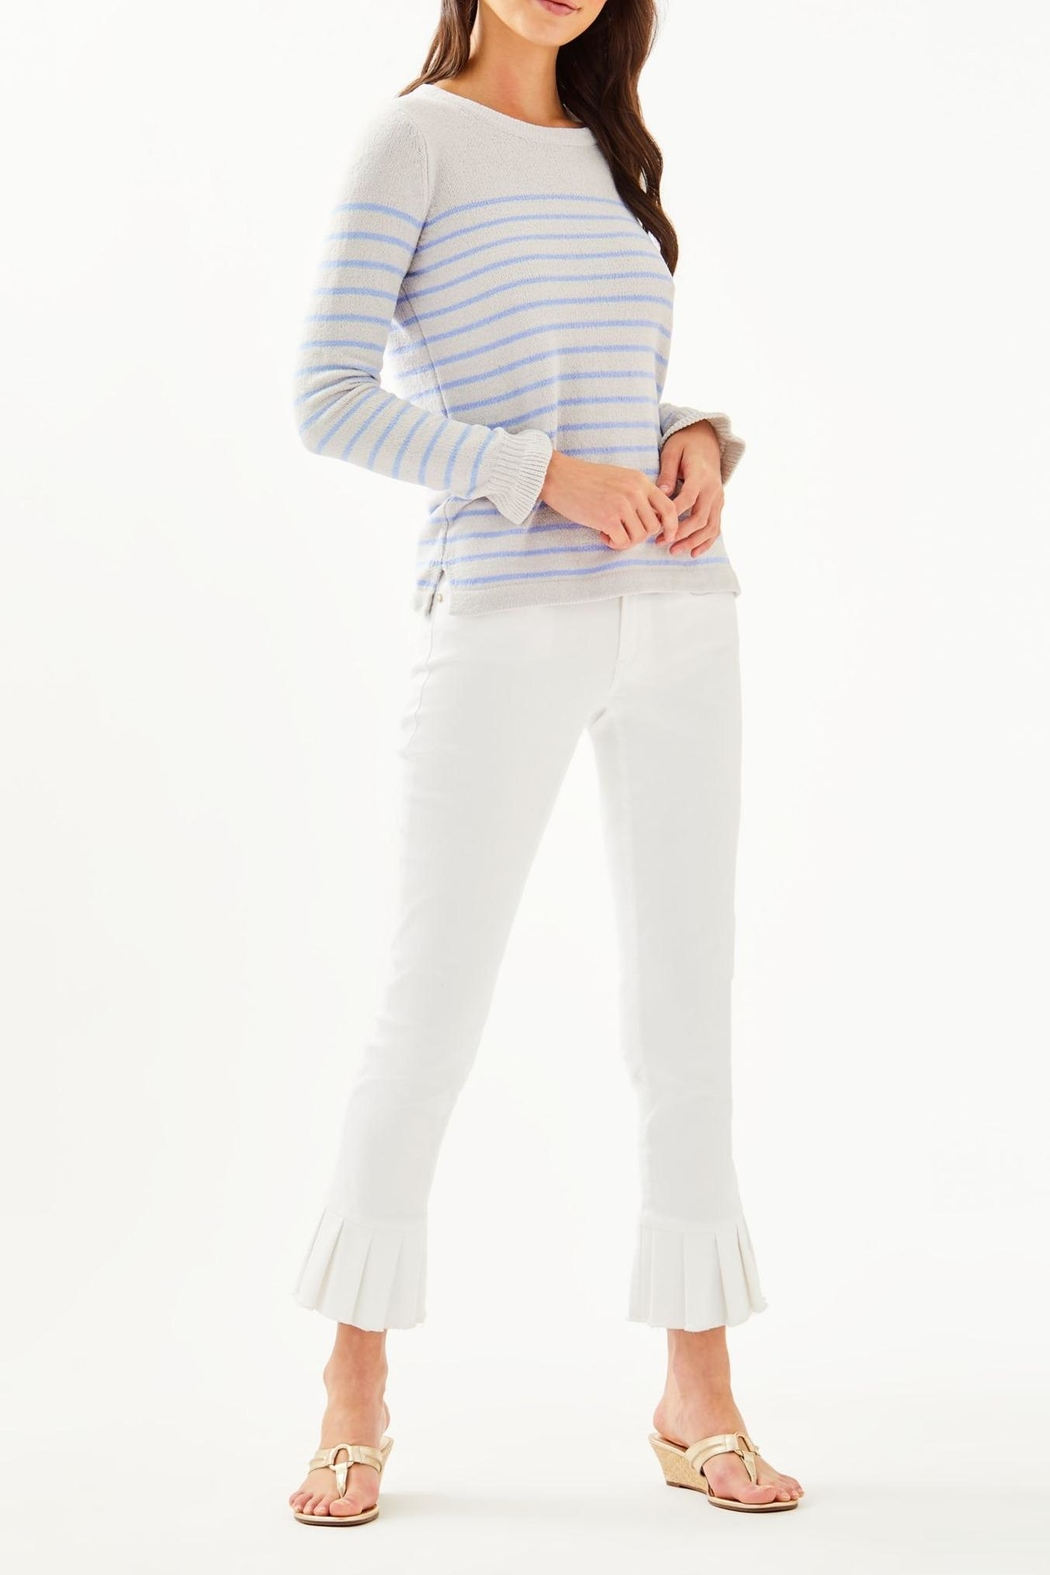 Lilly Pulitzer Calloway Sweater - Side Cropped Image